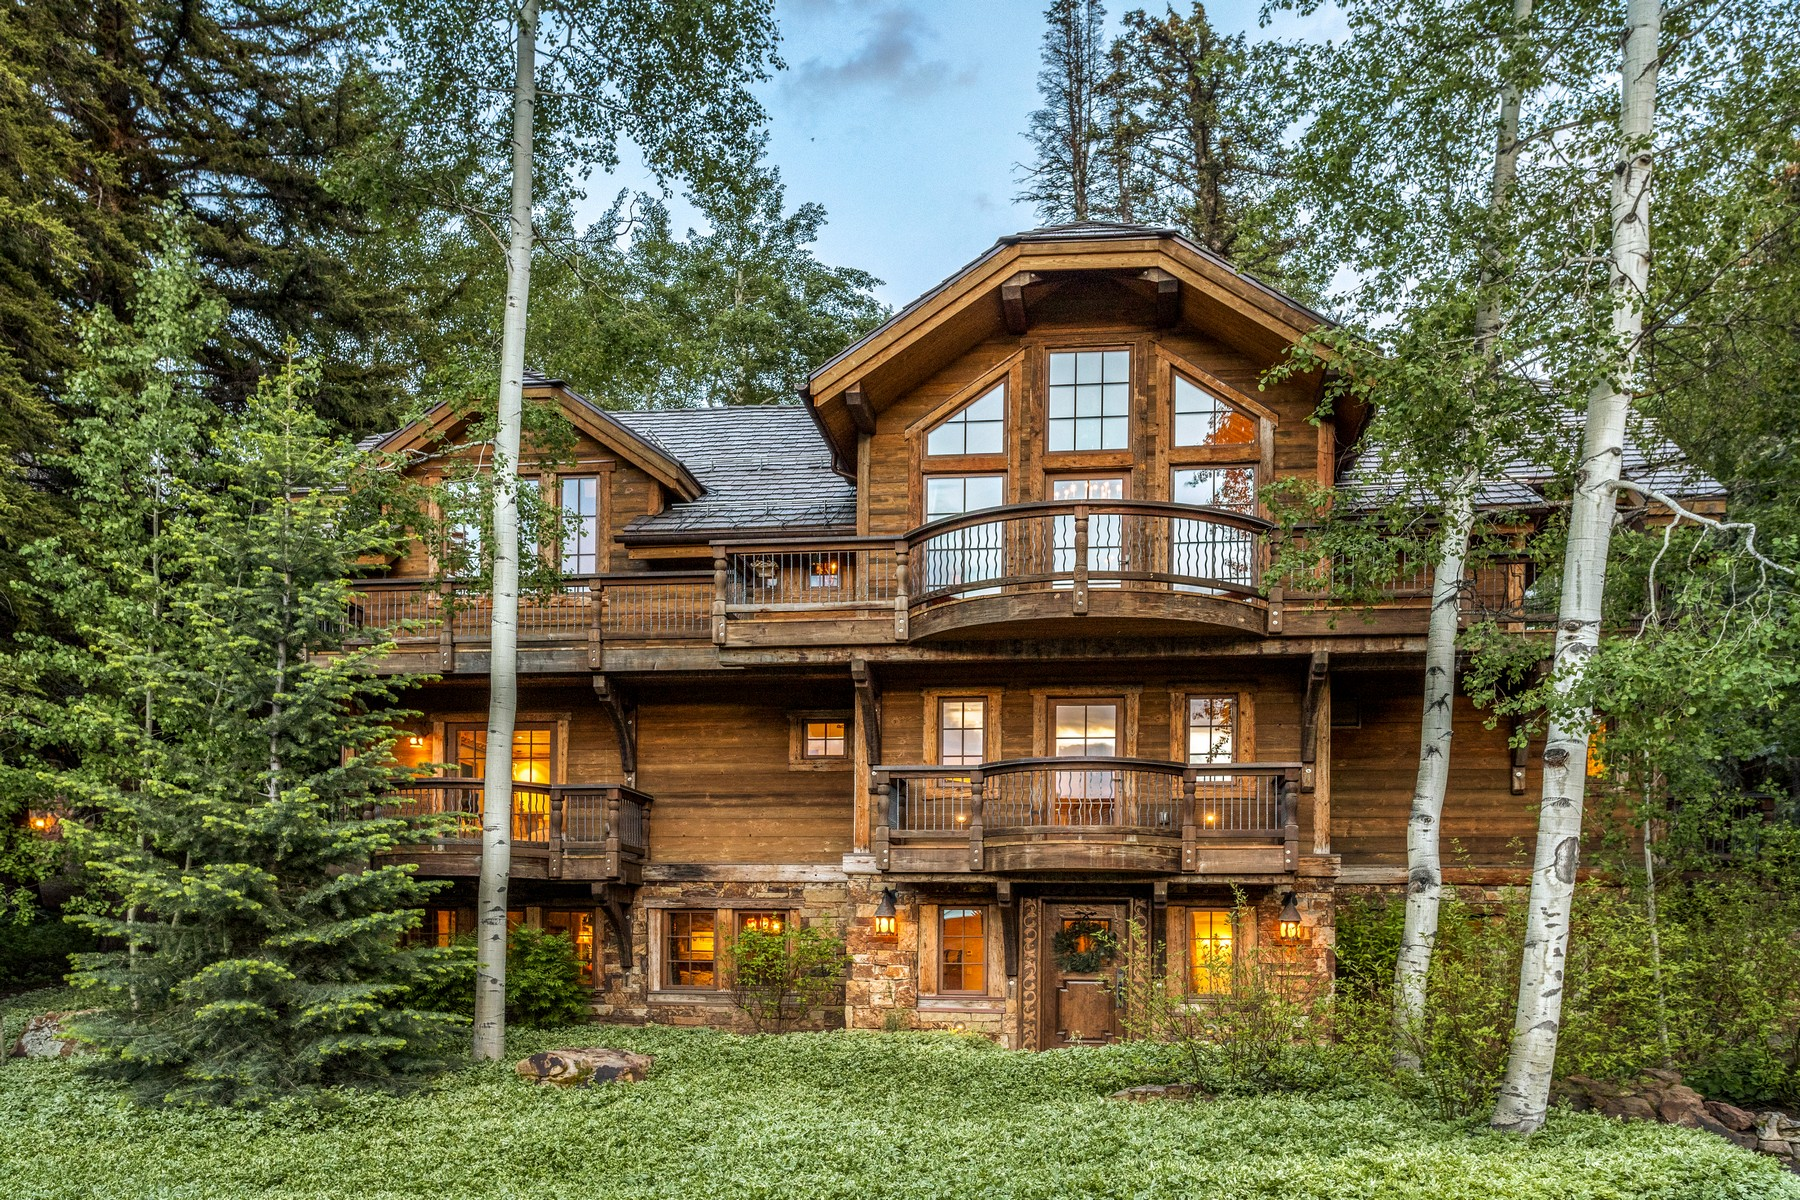 Single Family Homes for Sale at Authentic ski estate, in a magical mountain setting 454 Beaver Dam Road Vail, Colorado 81657 United States